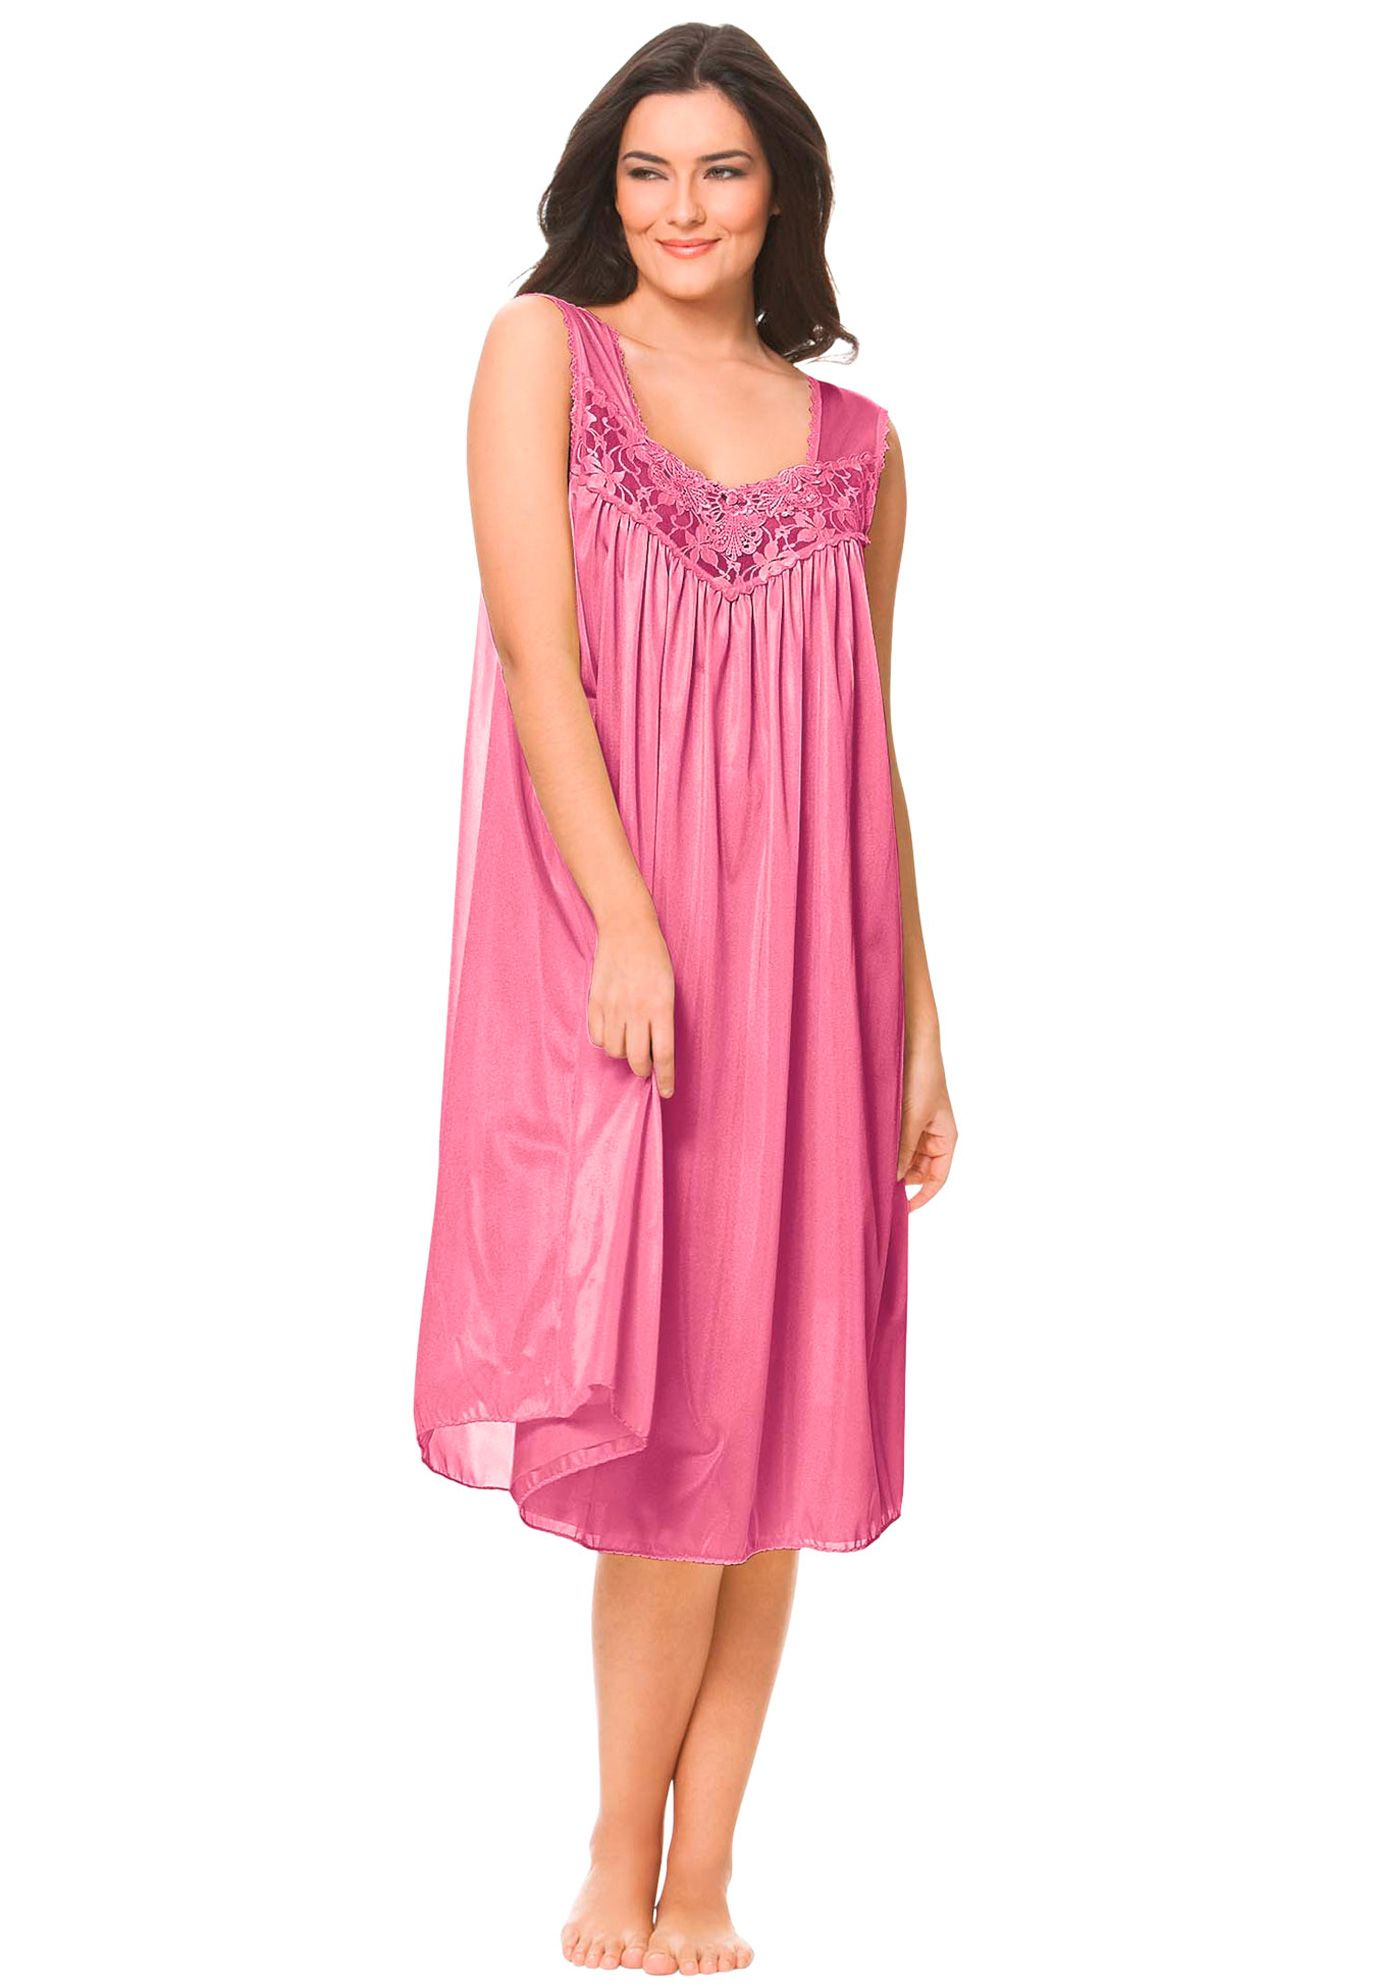 Tricot waltz-length nightgown by Only Necessities® | Plus Size ...